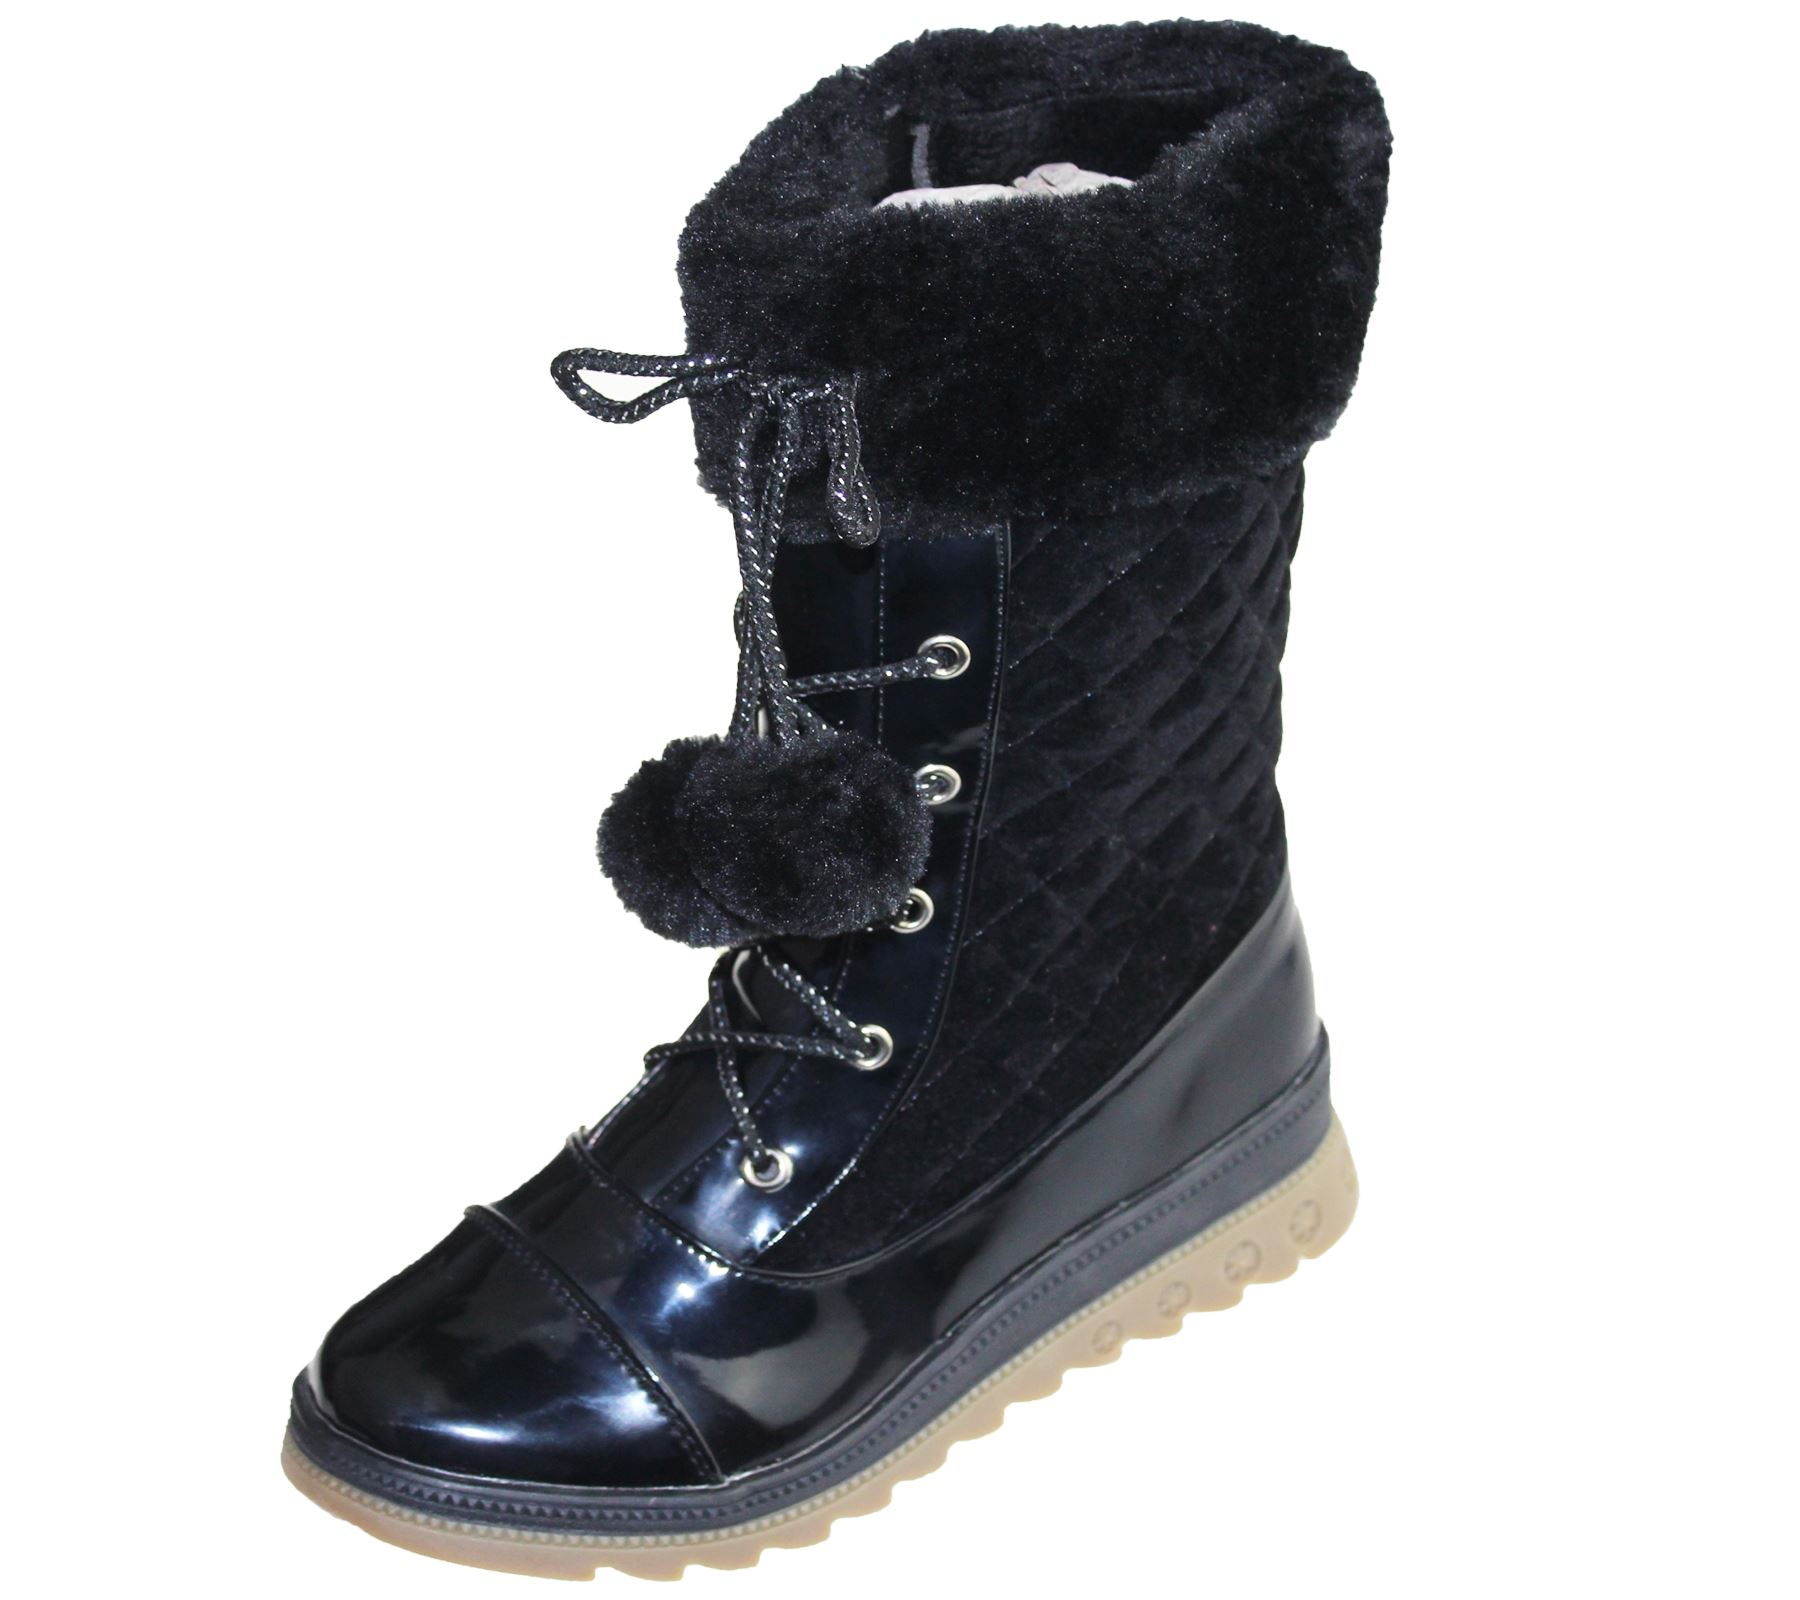 Christmas Boots For Girls.Details About Girls Warm Linned Boots Pom Pom Winter Christmas High Top Quilted Ankle Shoes